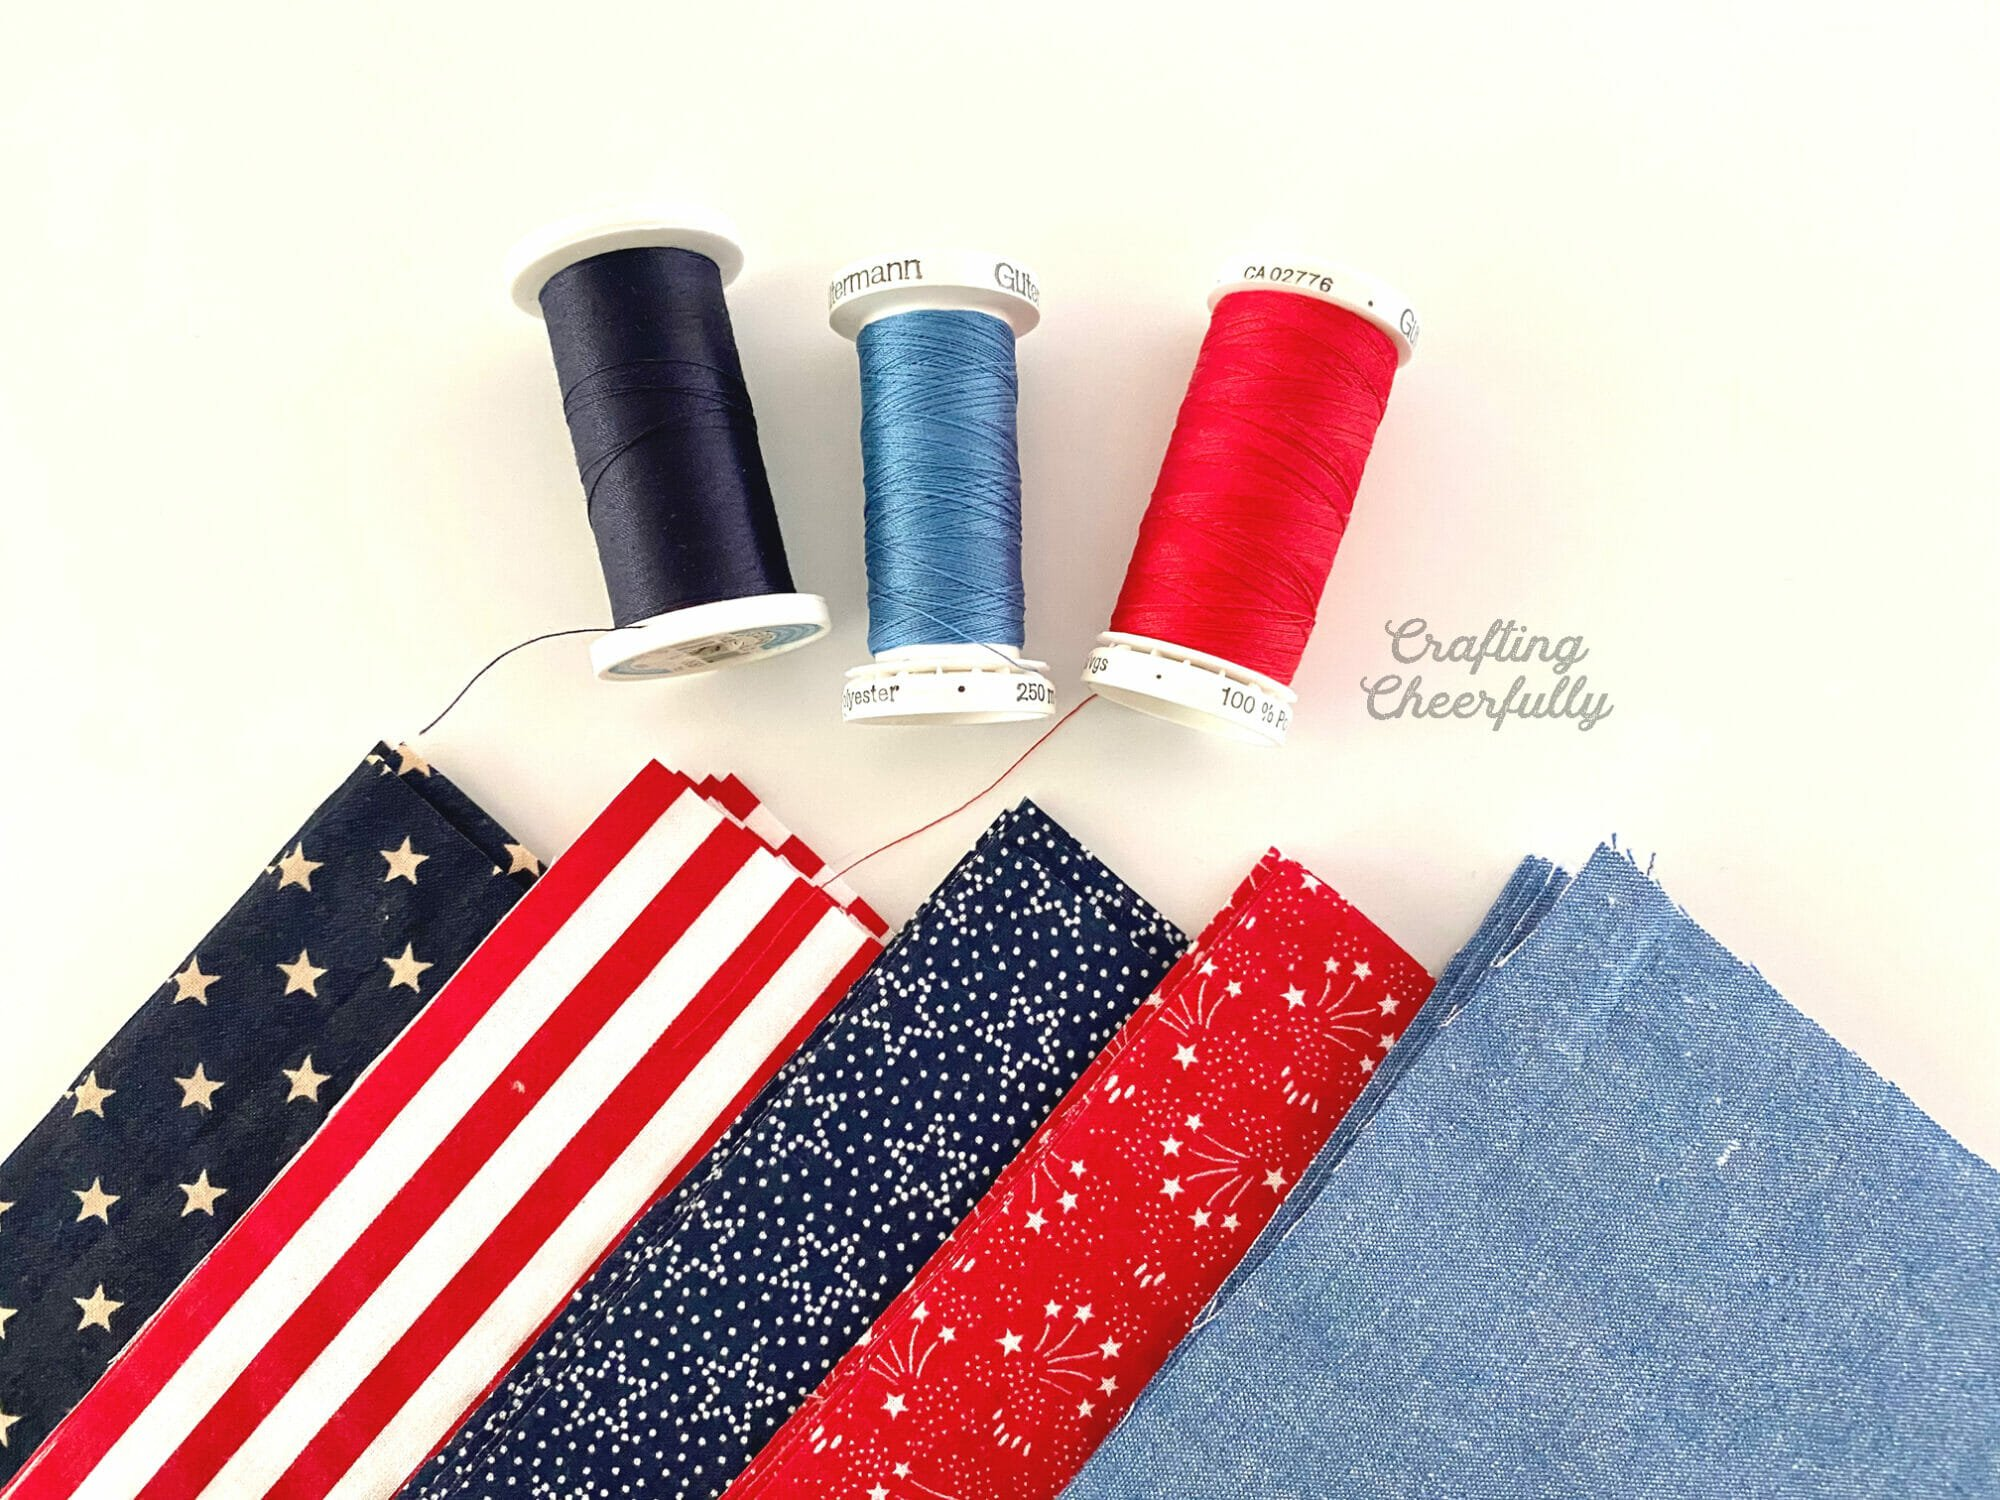 Red, white and blue fabric laying next to spools of coordinating thread.